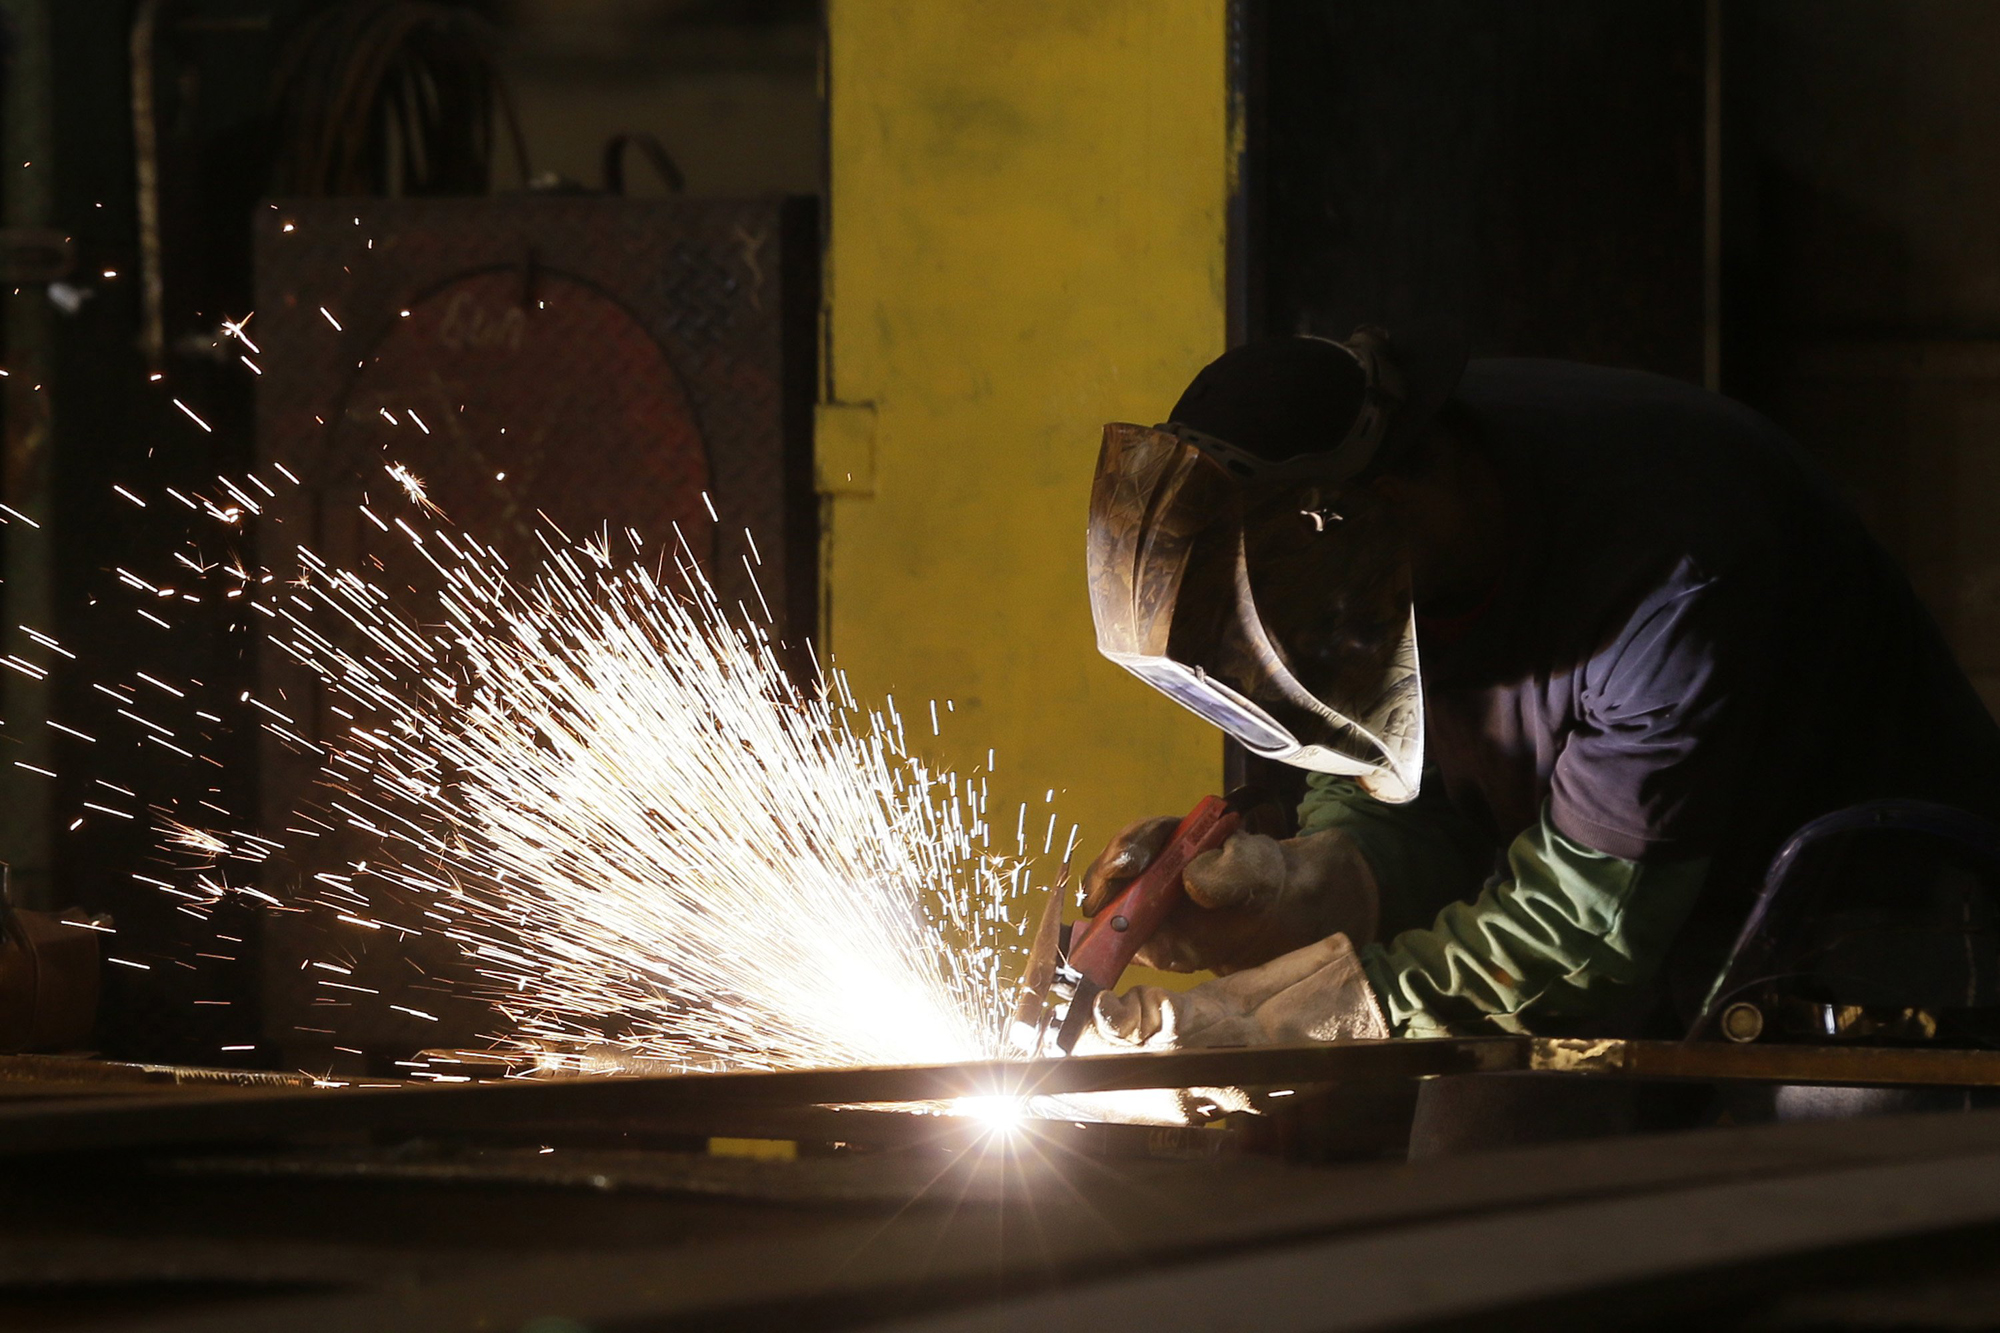 A welder works on a project at Prospect Steel, a unit of Lexicon Inc., in Little Rock, Ark., July 25.